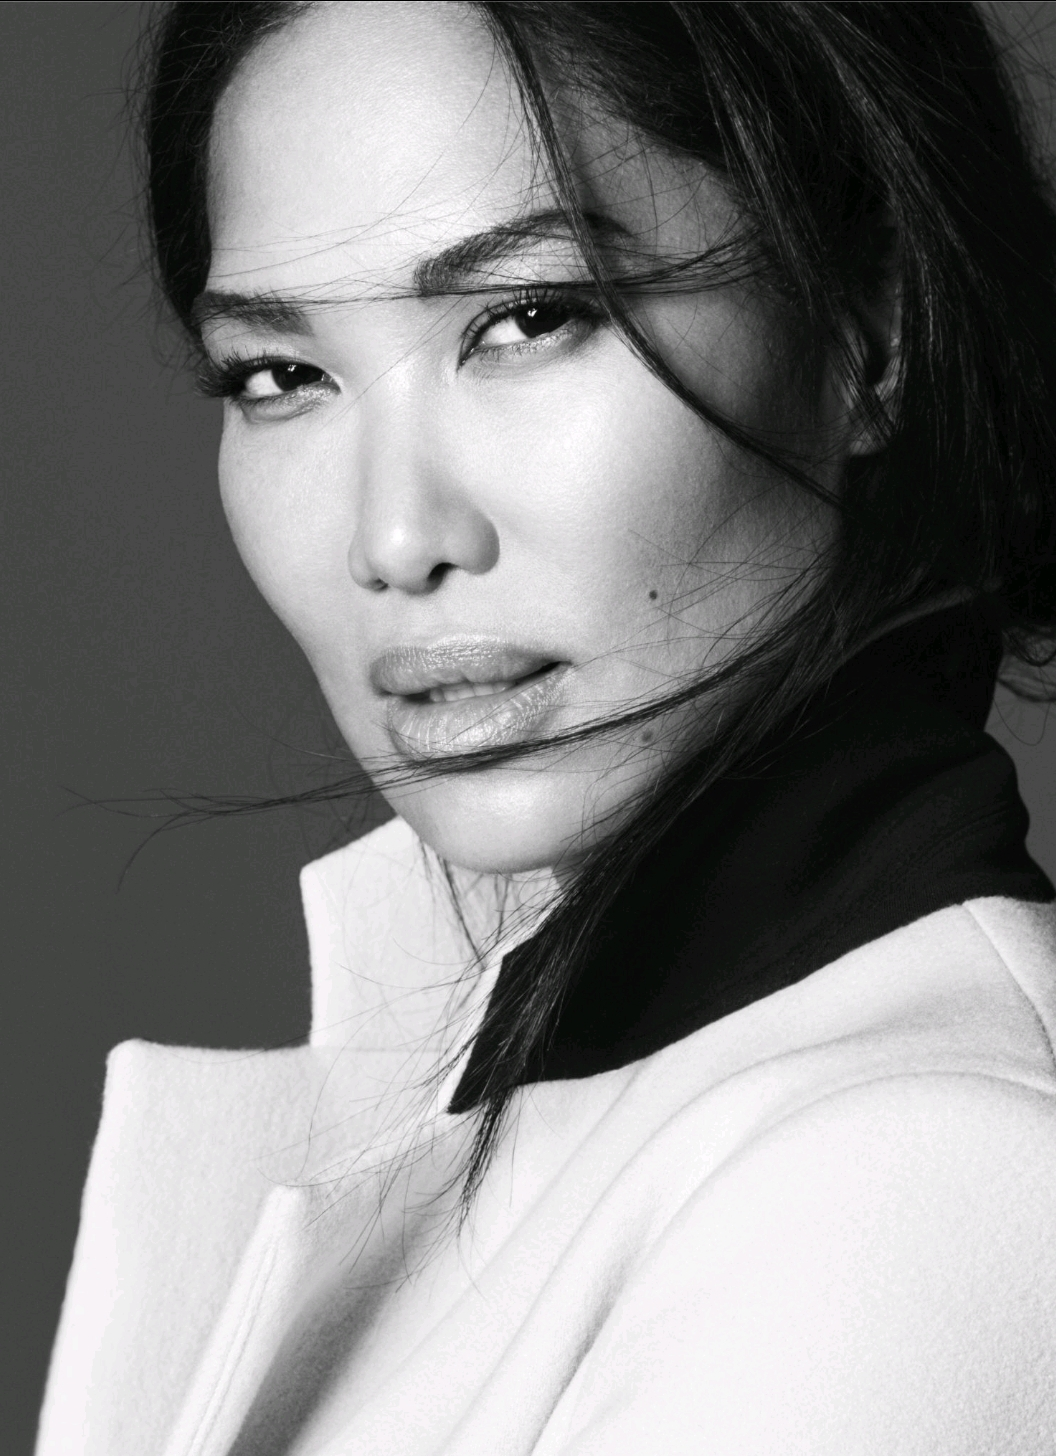 Life Lessons from Kimora Lee Simmons